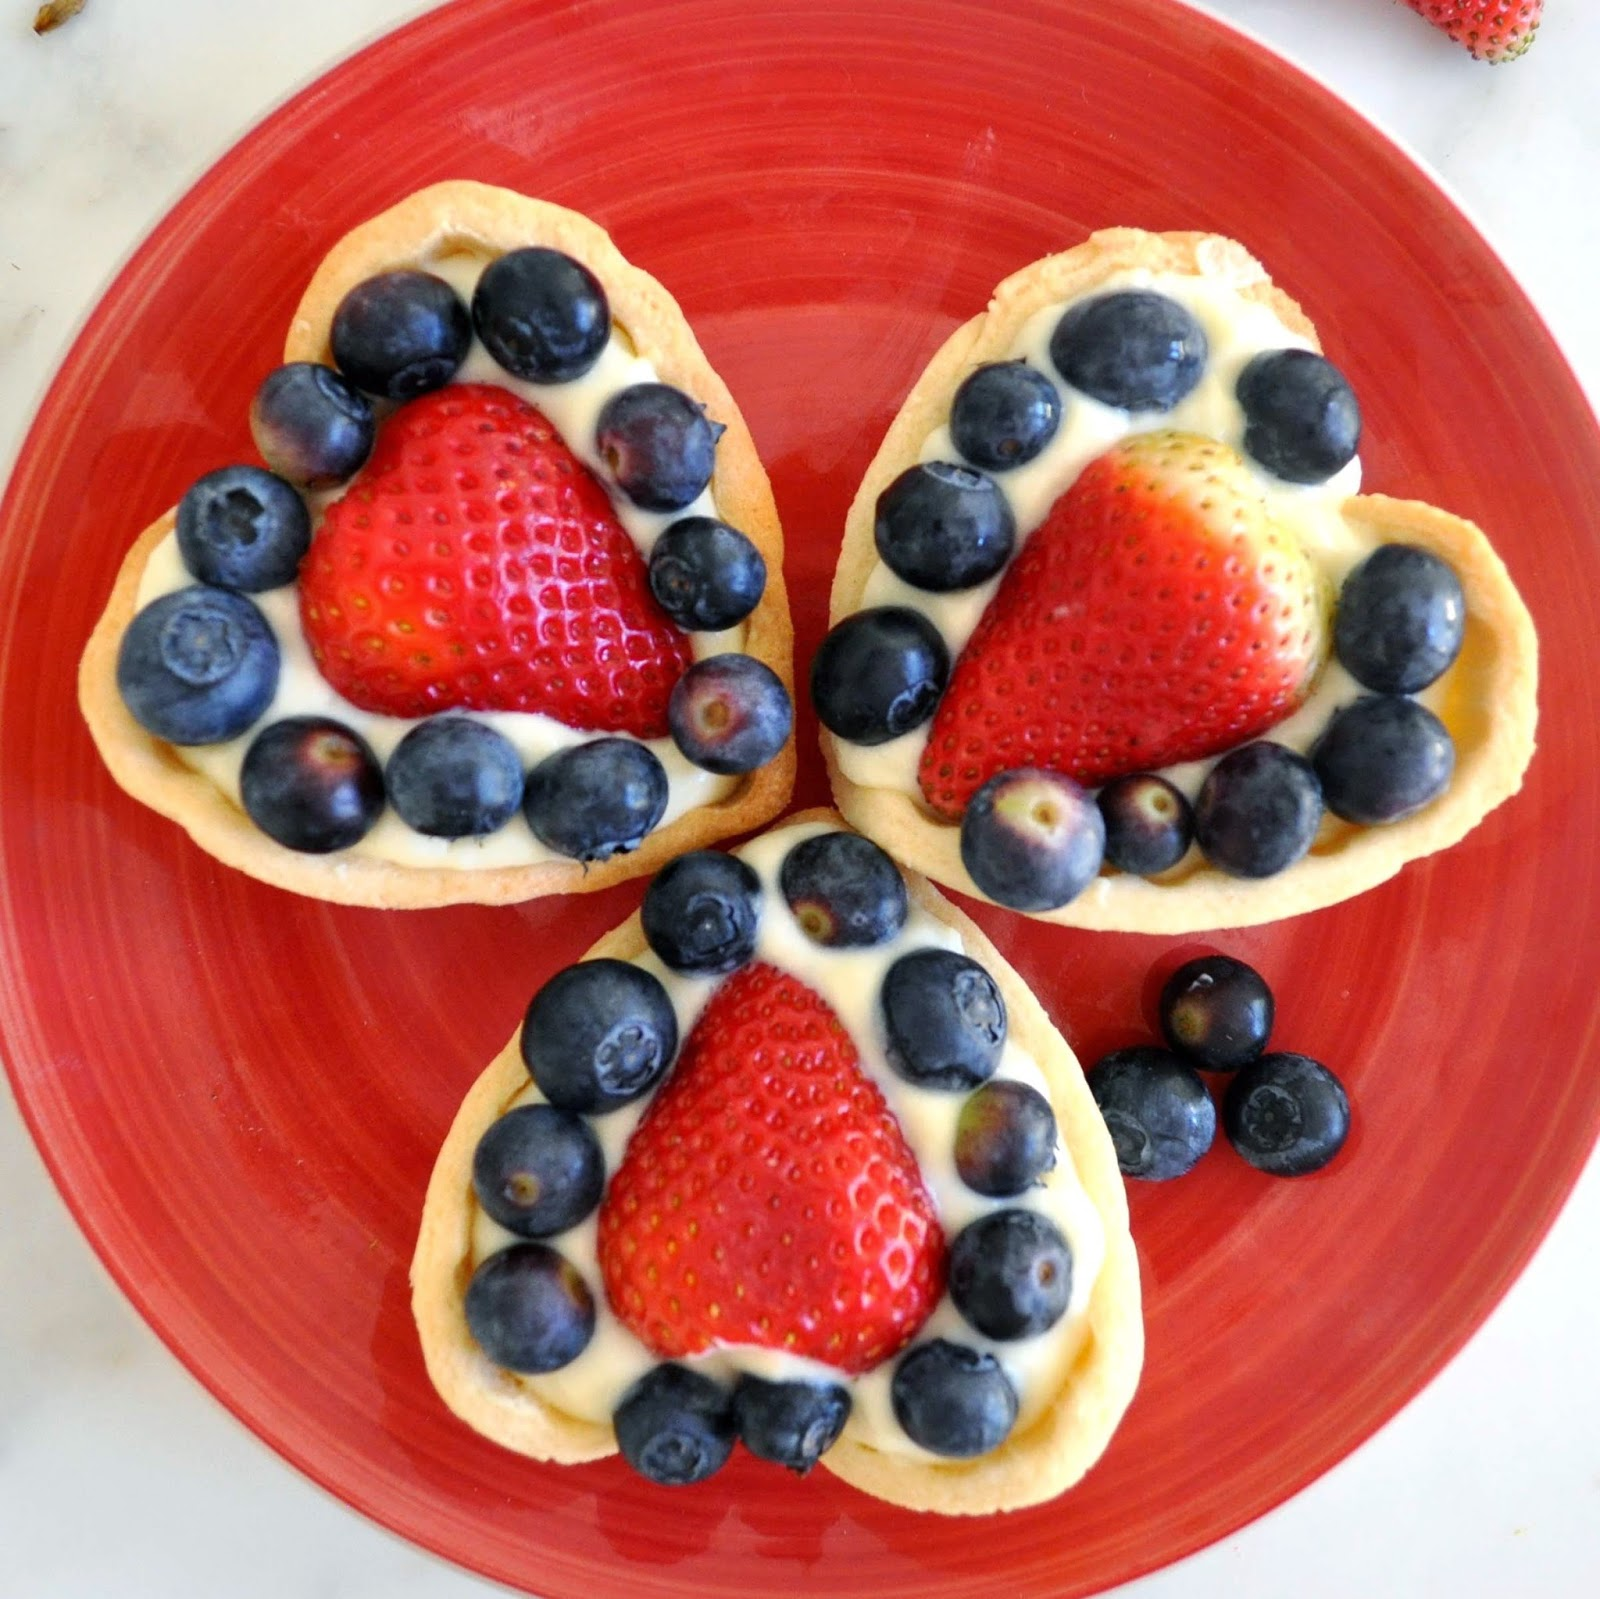 Cooking with Manuela: Heart Shaped Fruit Tart